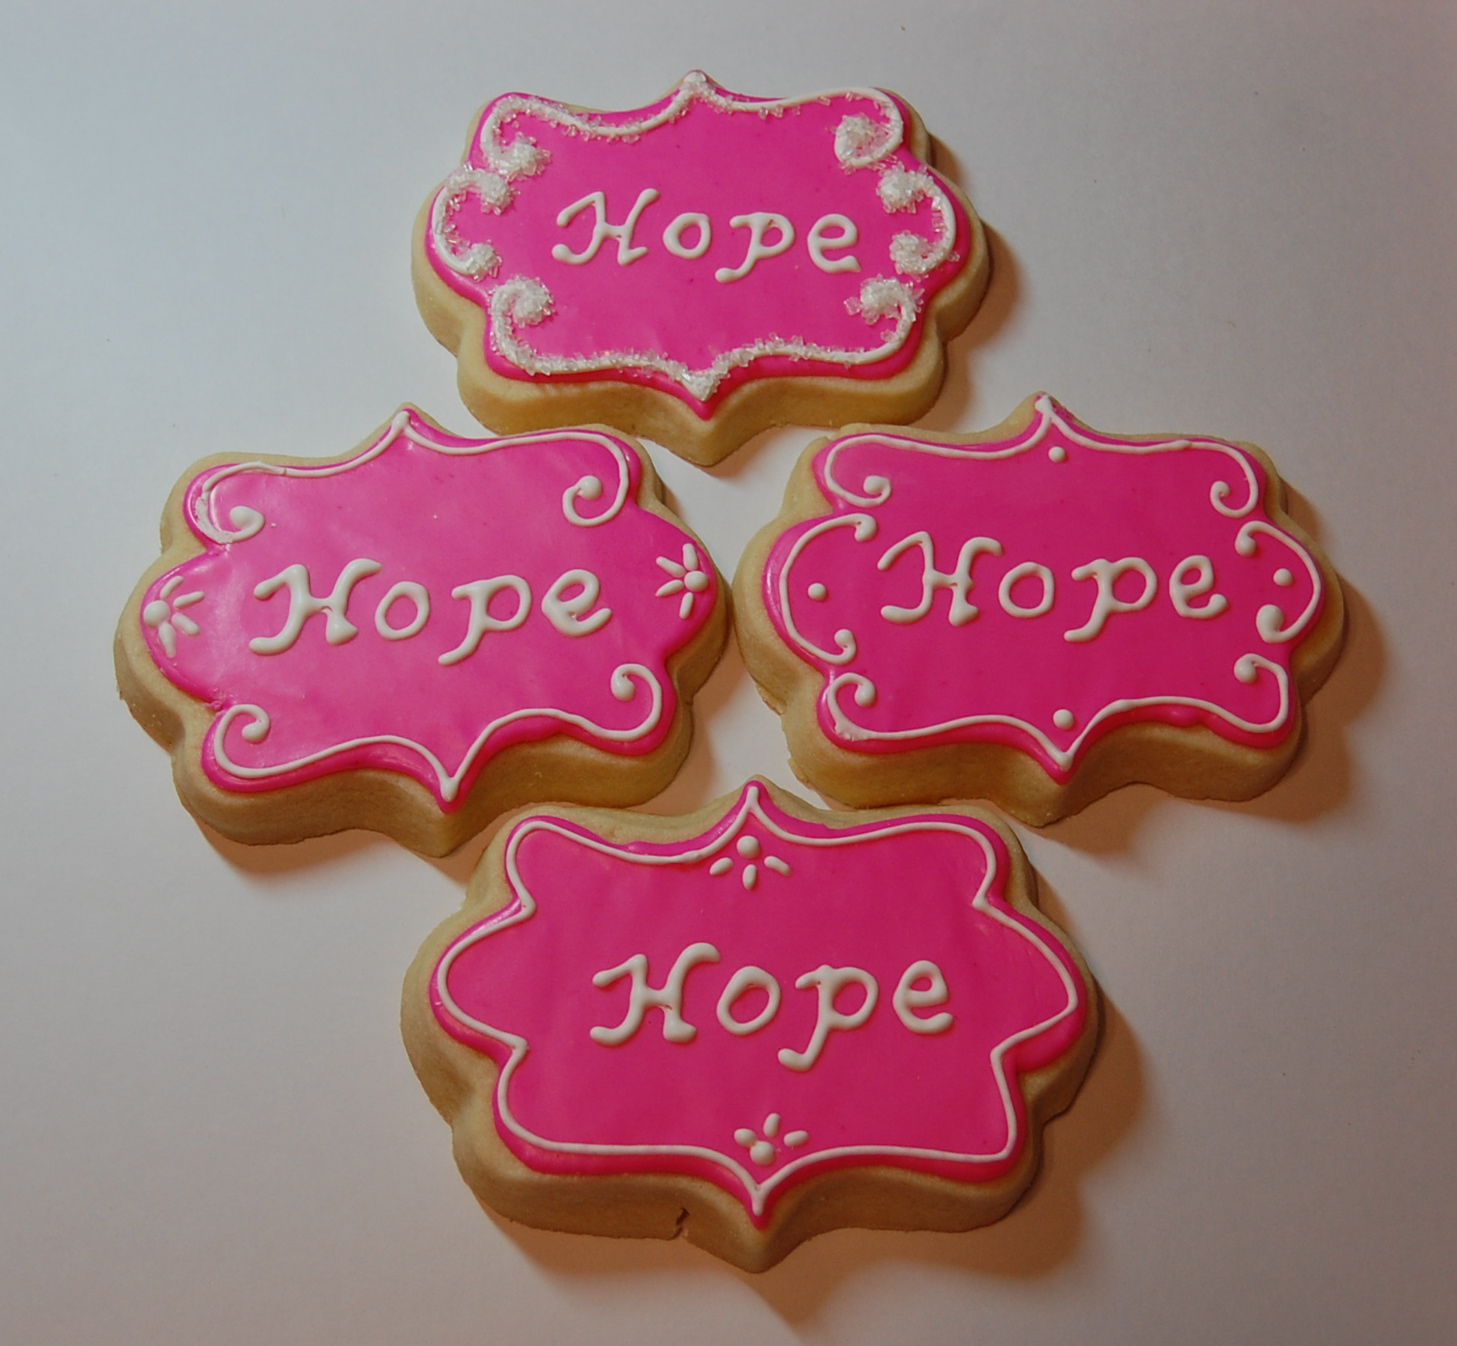 Hope Sugar Cookies - Breast Cancer Awareness